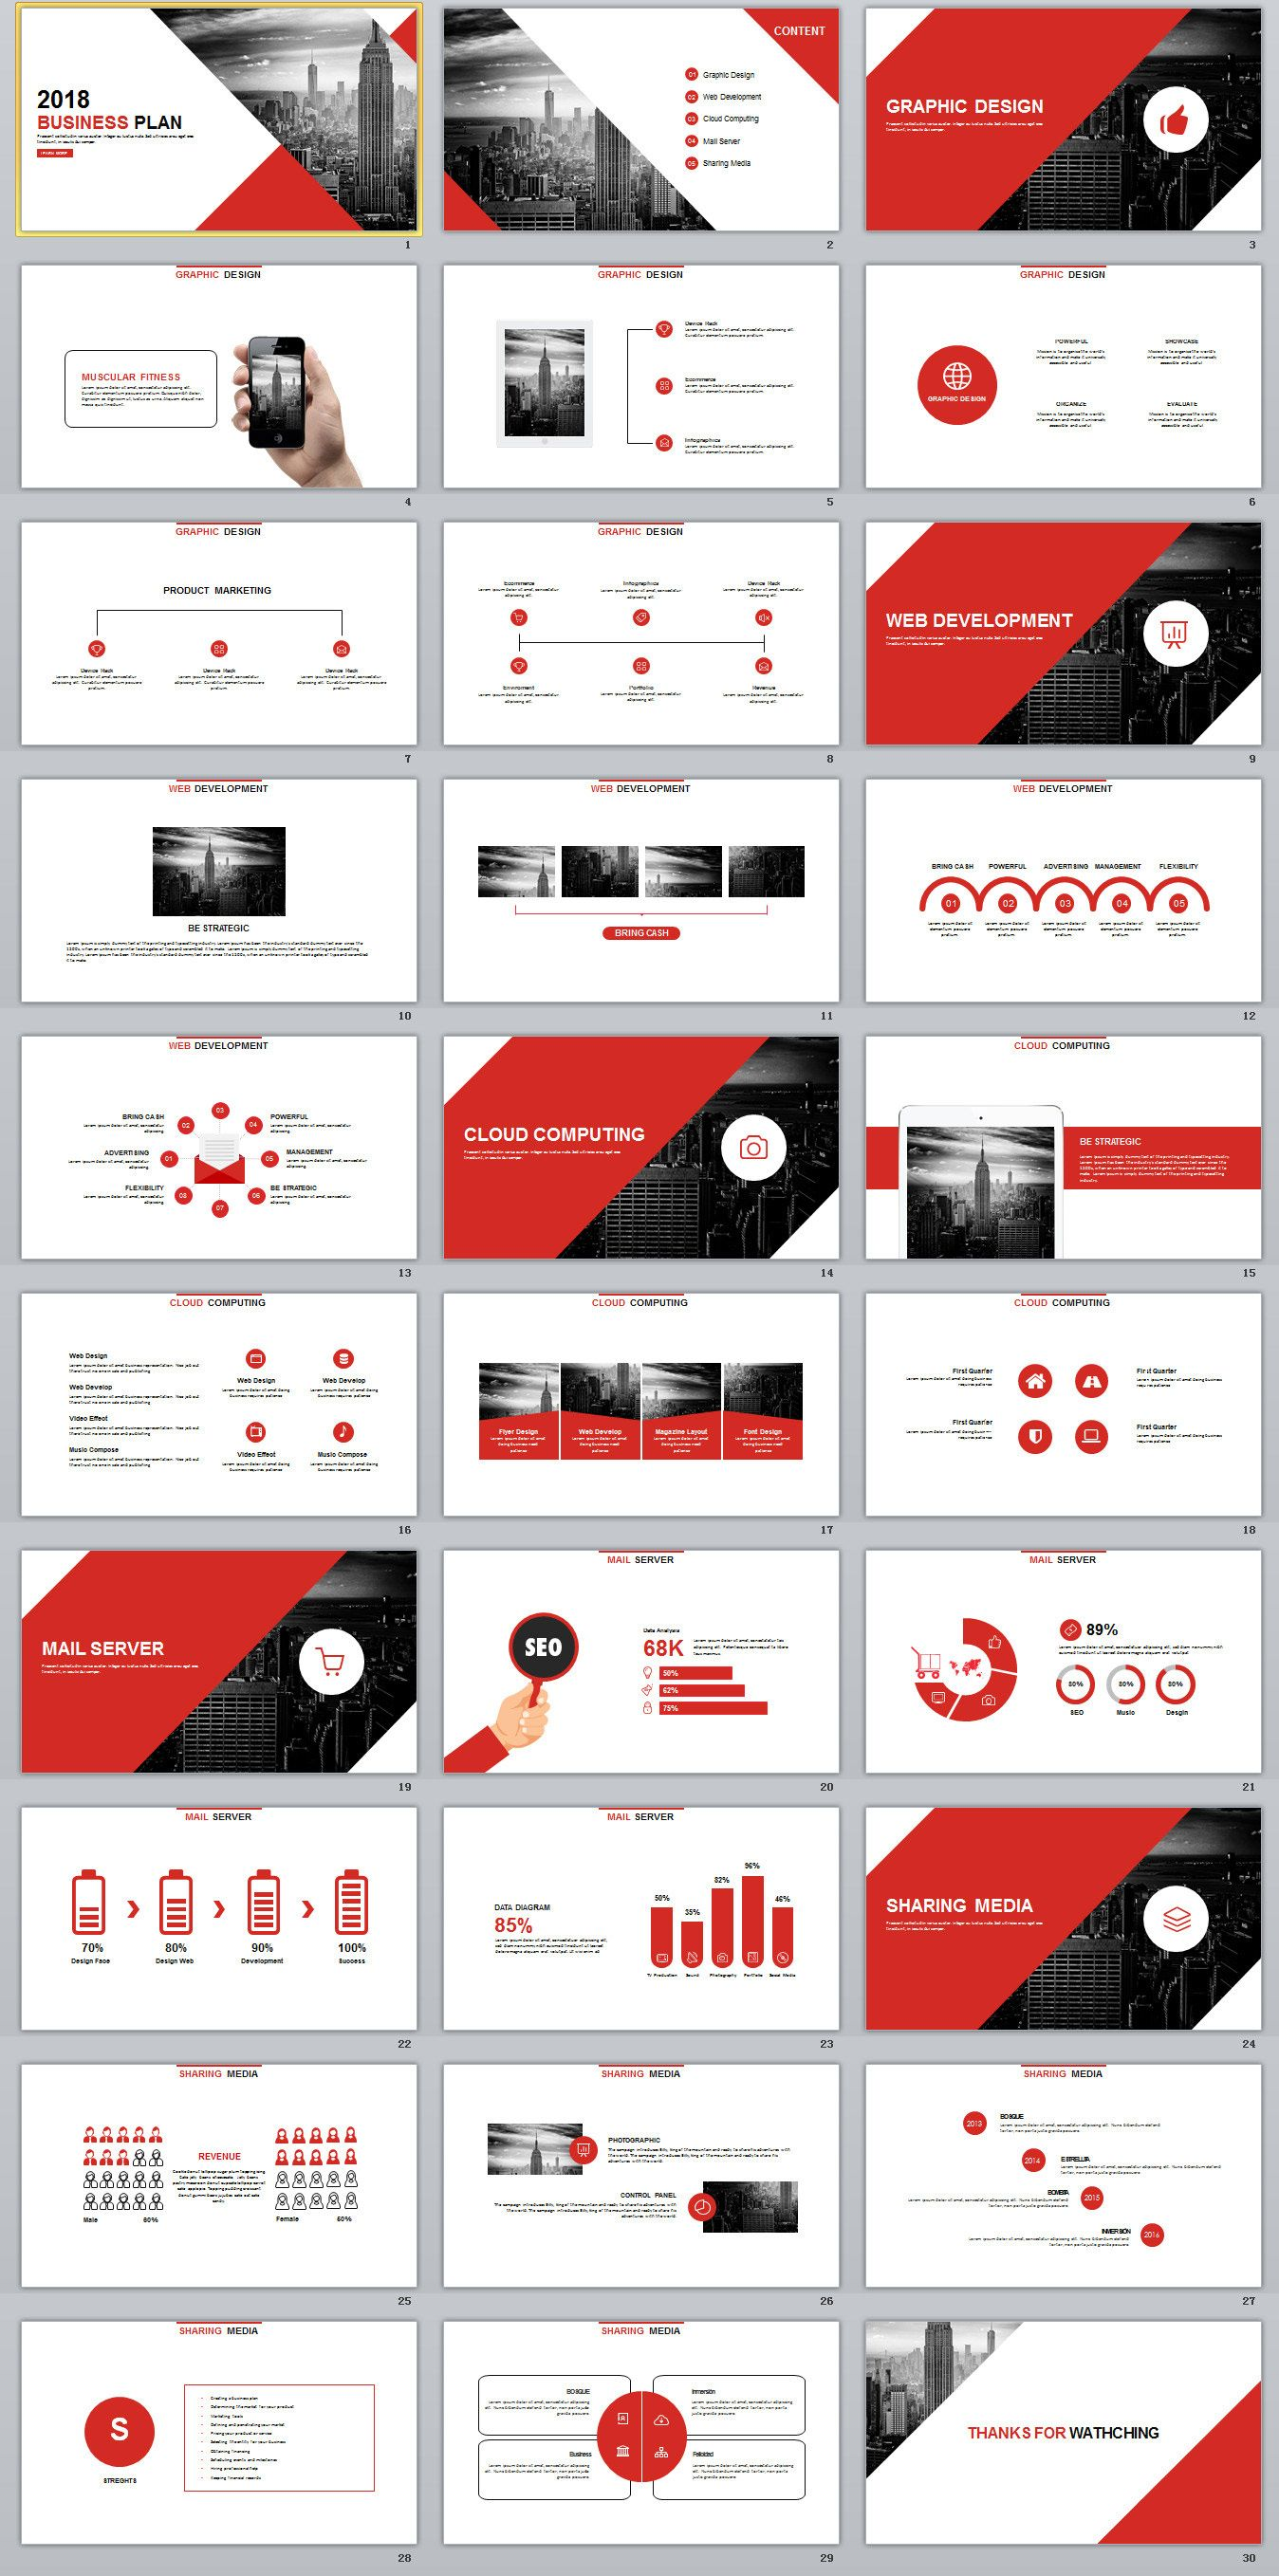 30 red year report charts powerpoint template on behance 30 red year report charts powerpoint template on behance powerpoint templates presentation toneelgroepblik Image collections